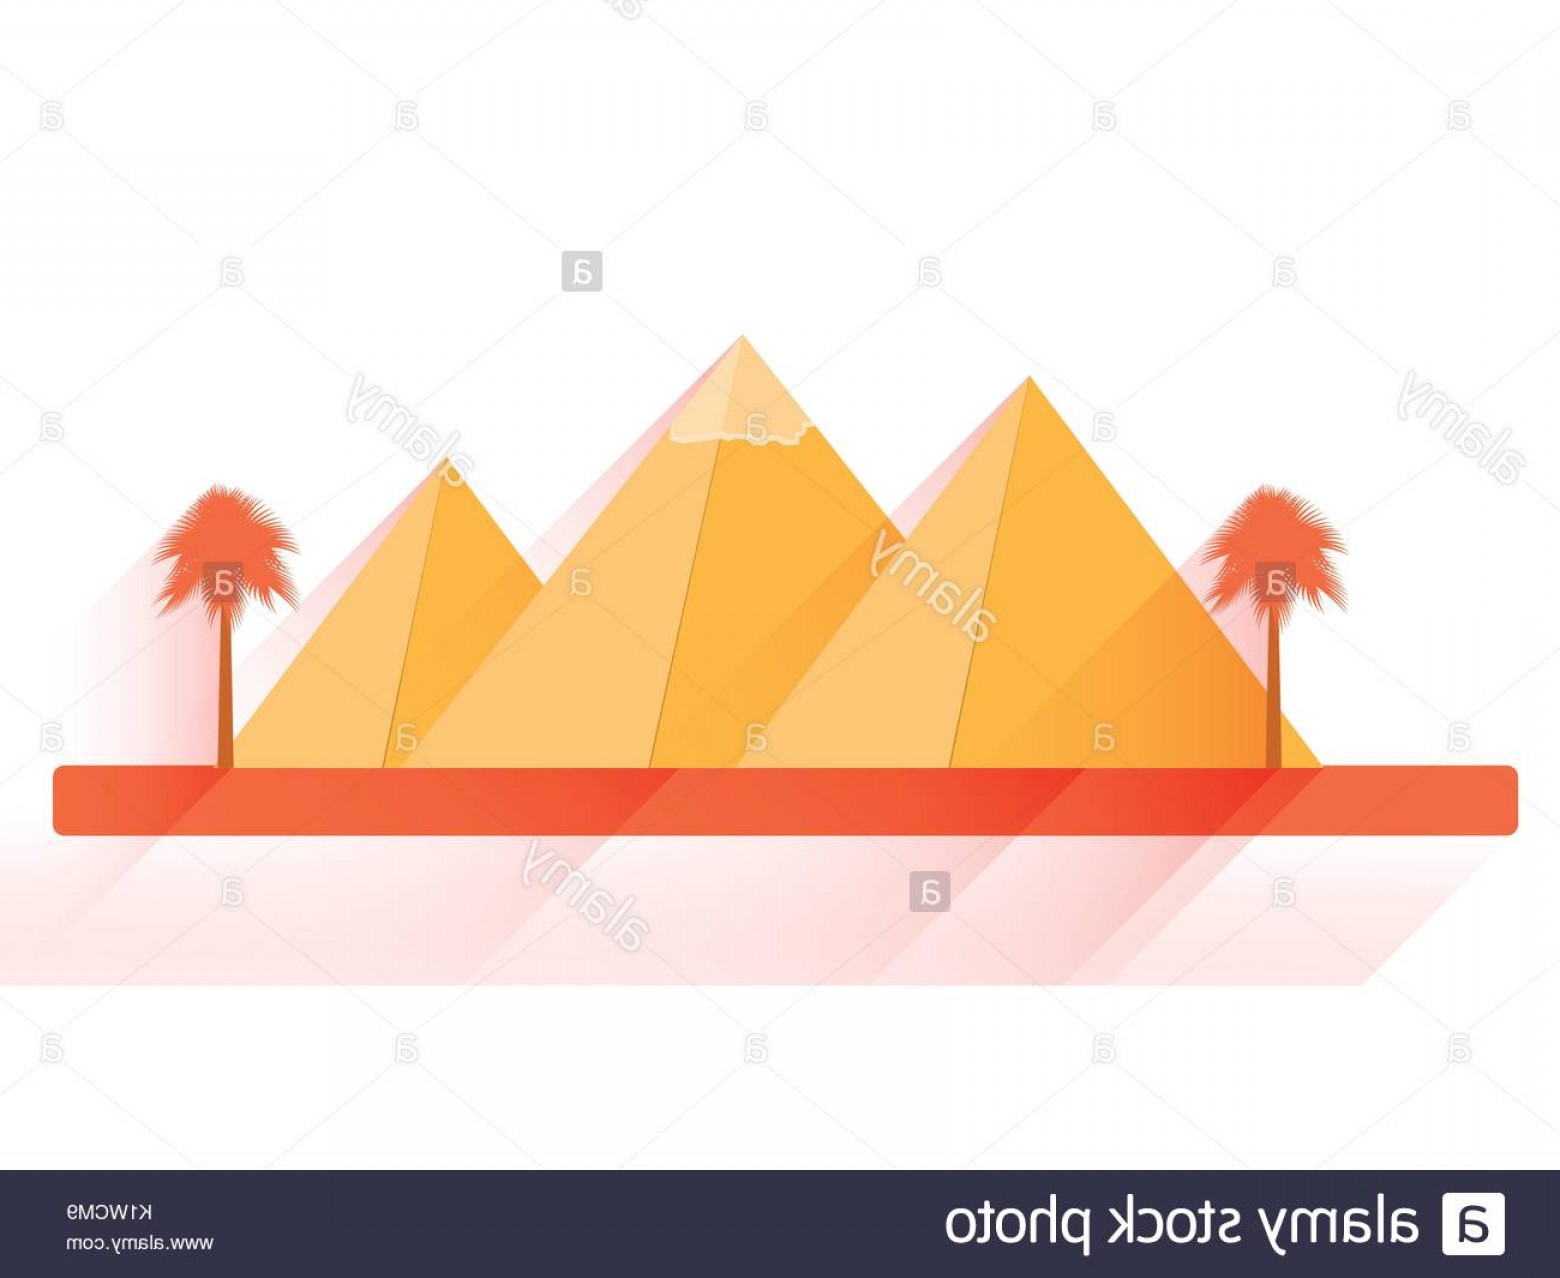 Piramids Vector Art: Egyptian Pyramids In Flat Style With Long Shadows On White Background Image